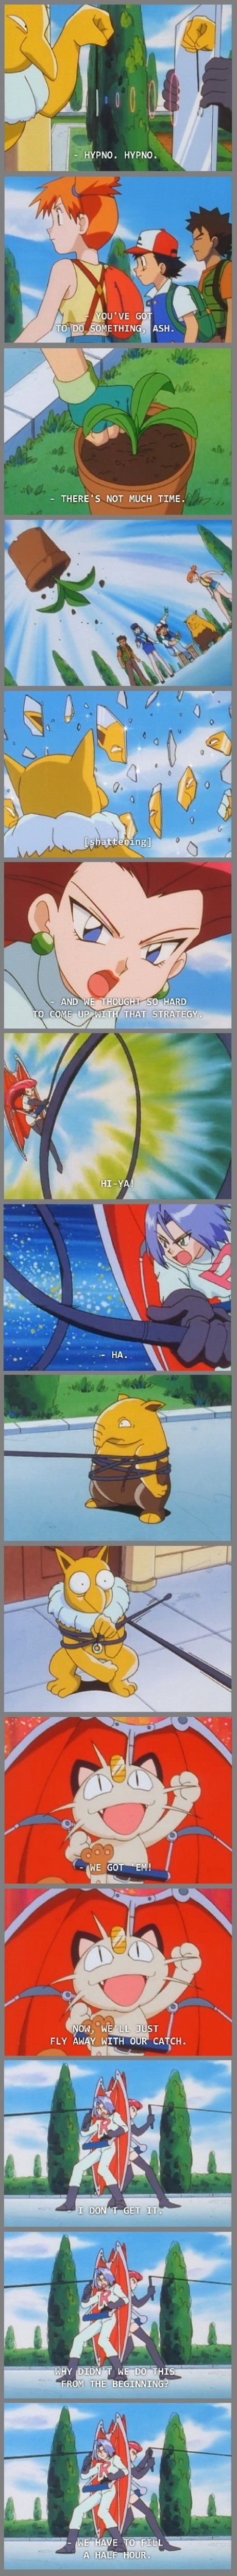 Pokemon breaking the fourth wall